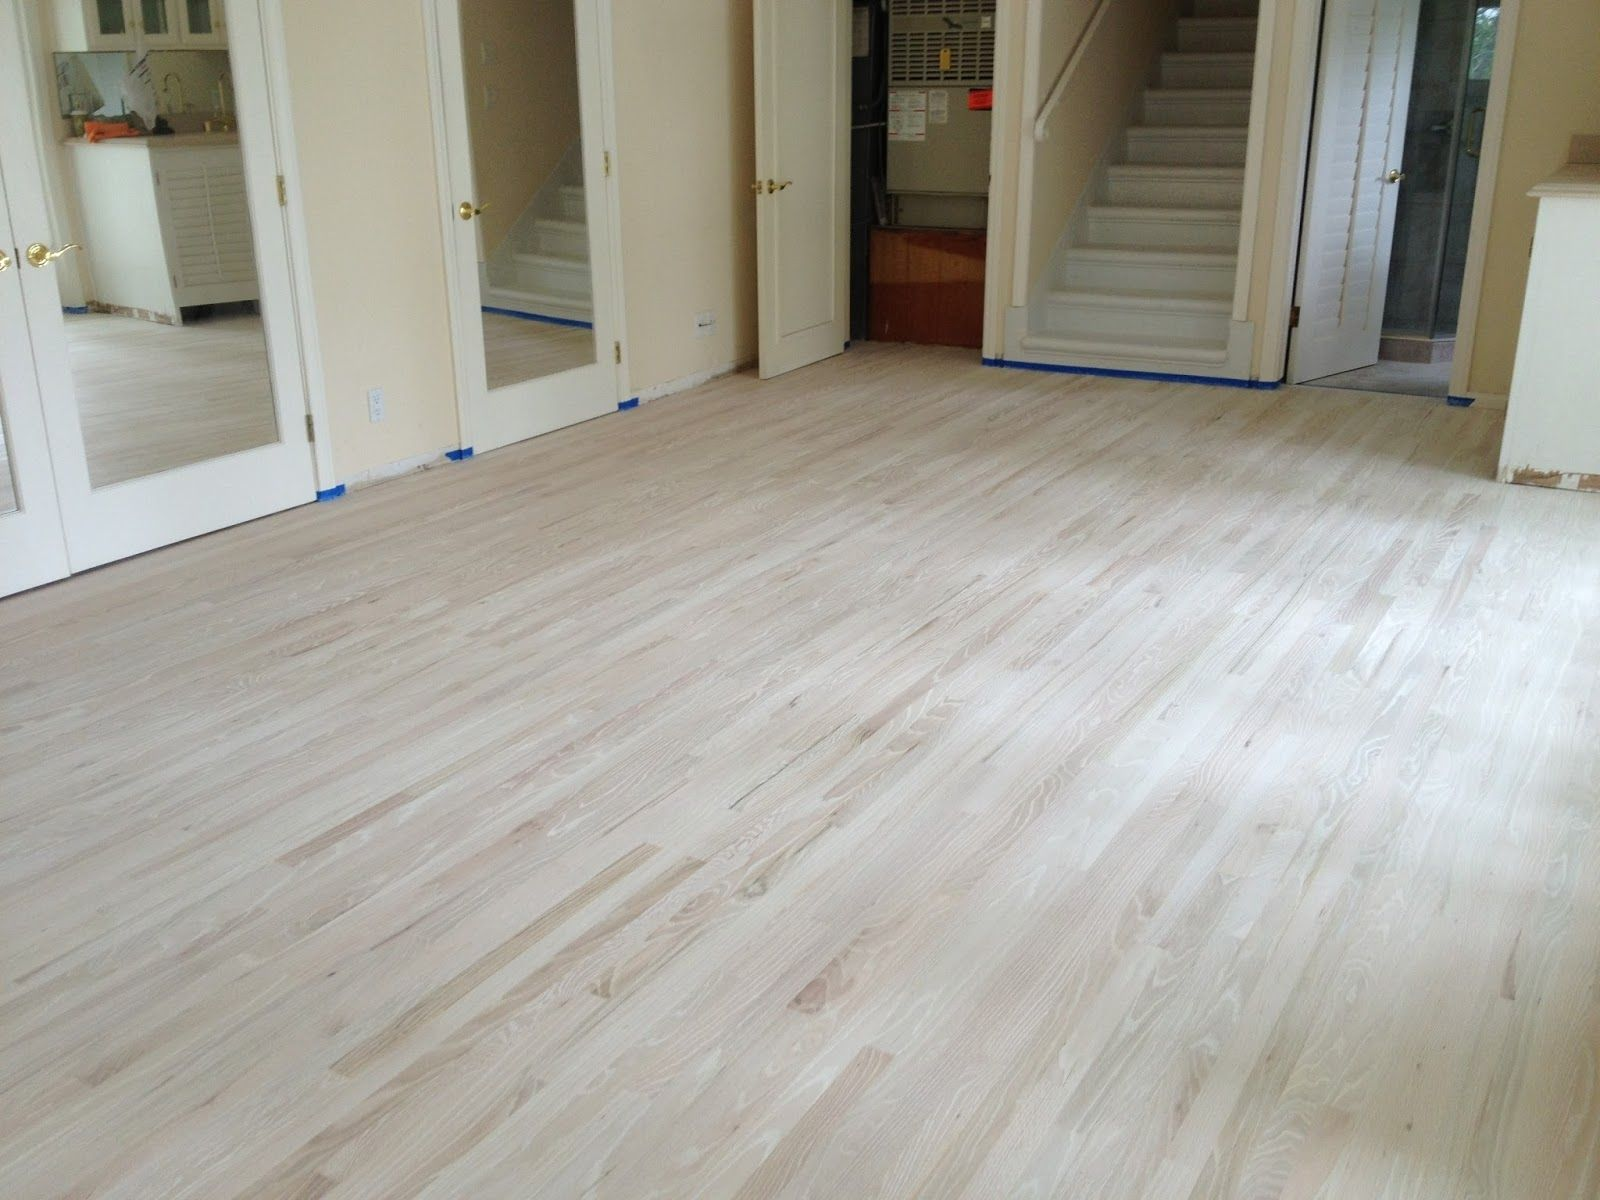 Chlorine Bleach Wood Floors Diy Home White Hardwood